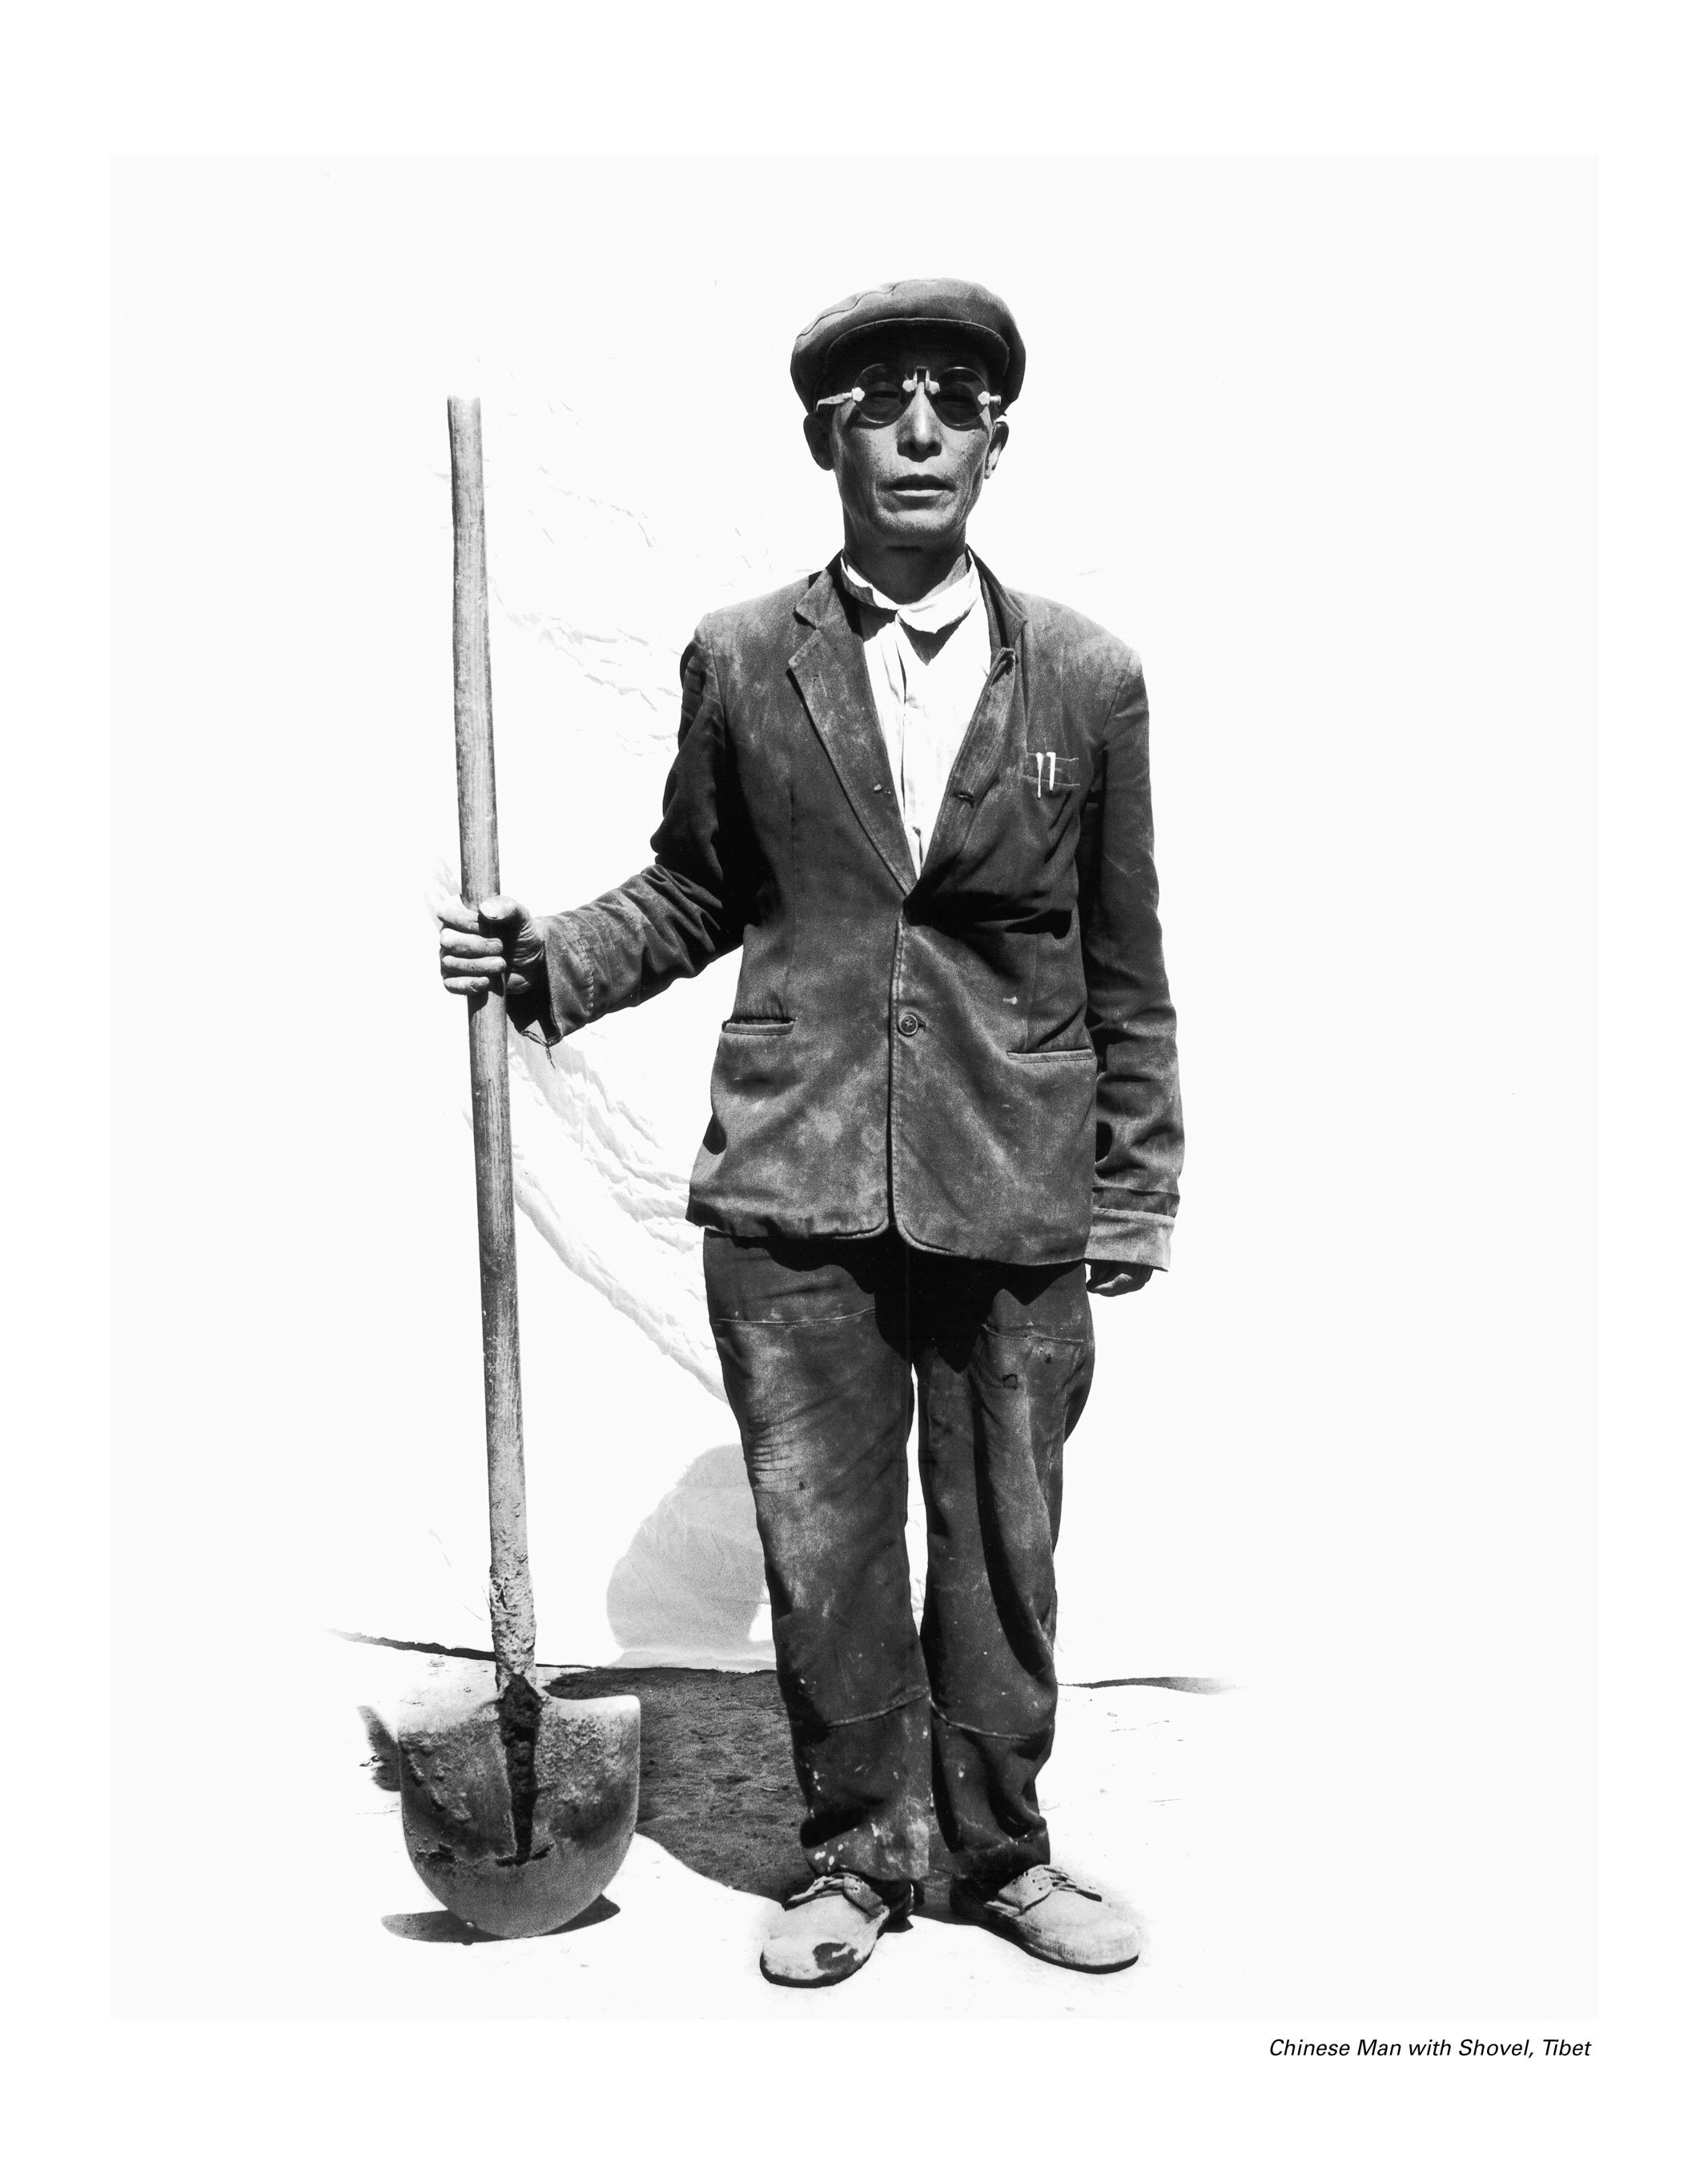 nf_Chinese_Man_With_Shovel_Tibet.jpg